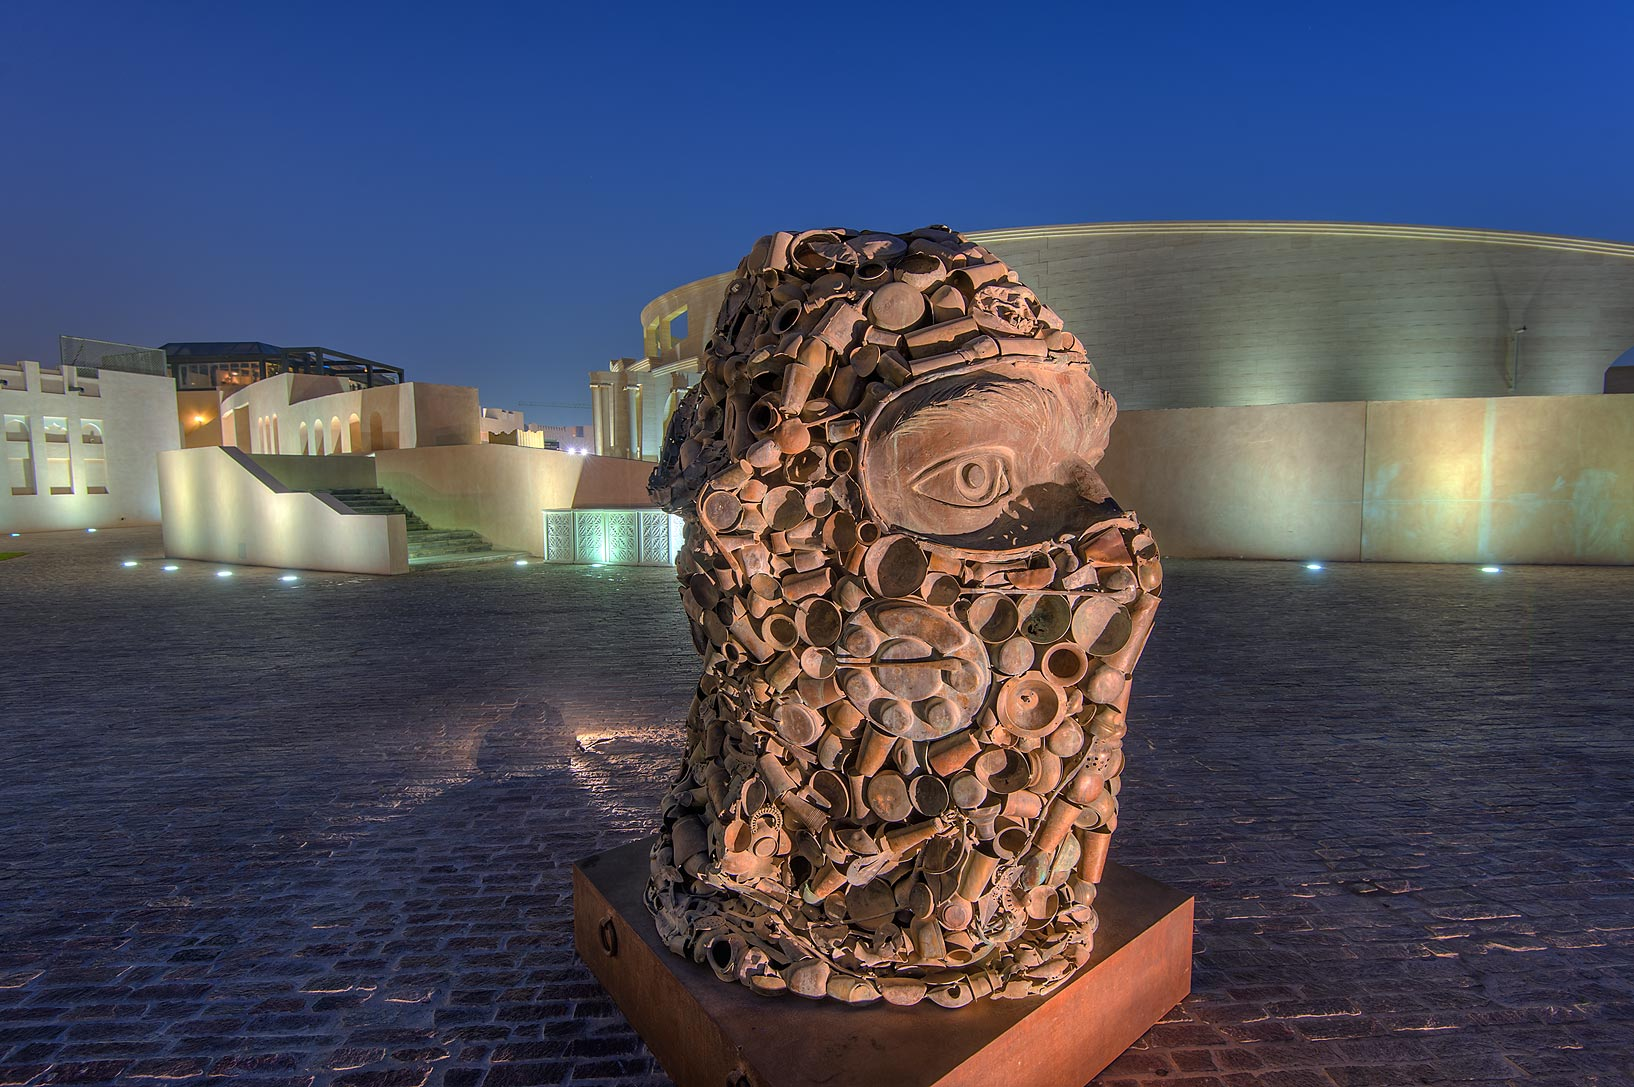 Part of Subodh Gupta's Three Monkeys Sculpture...Katara Cultural Village. Doha, Qatar